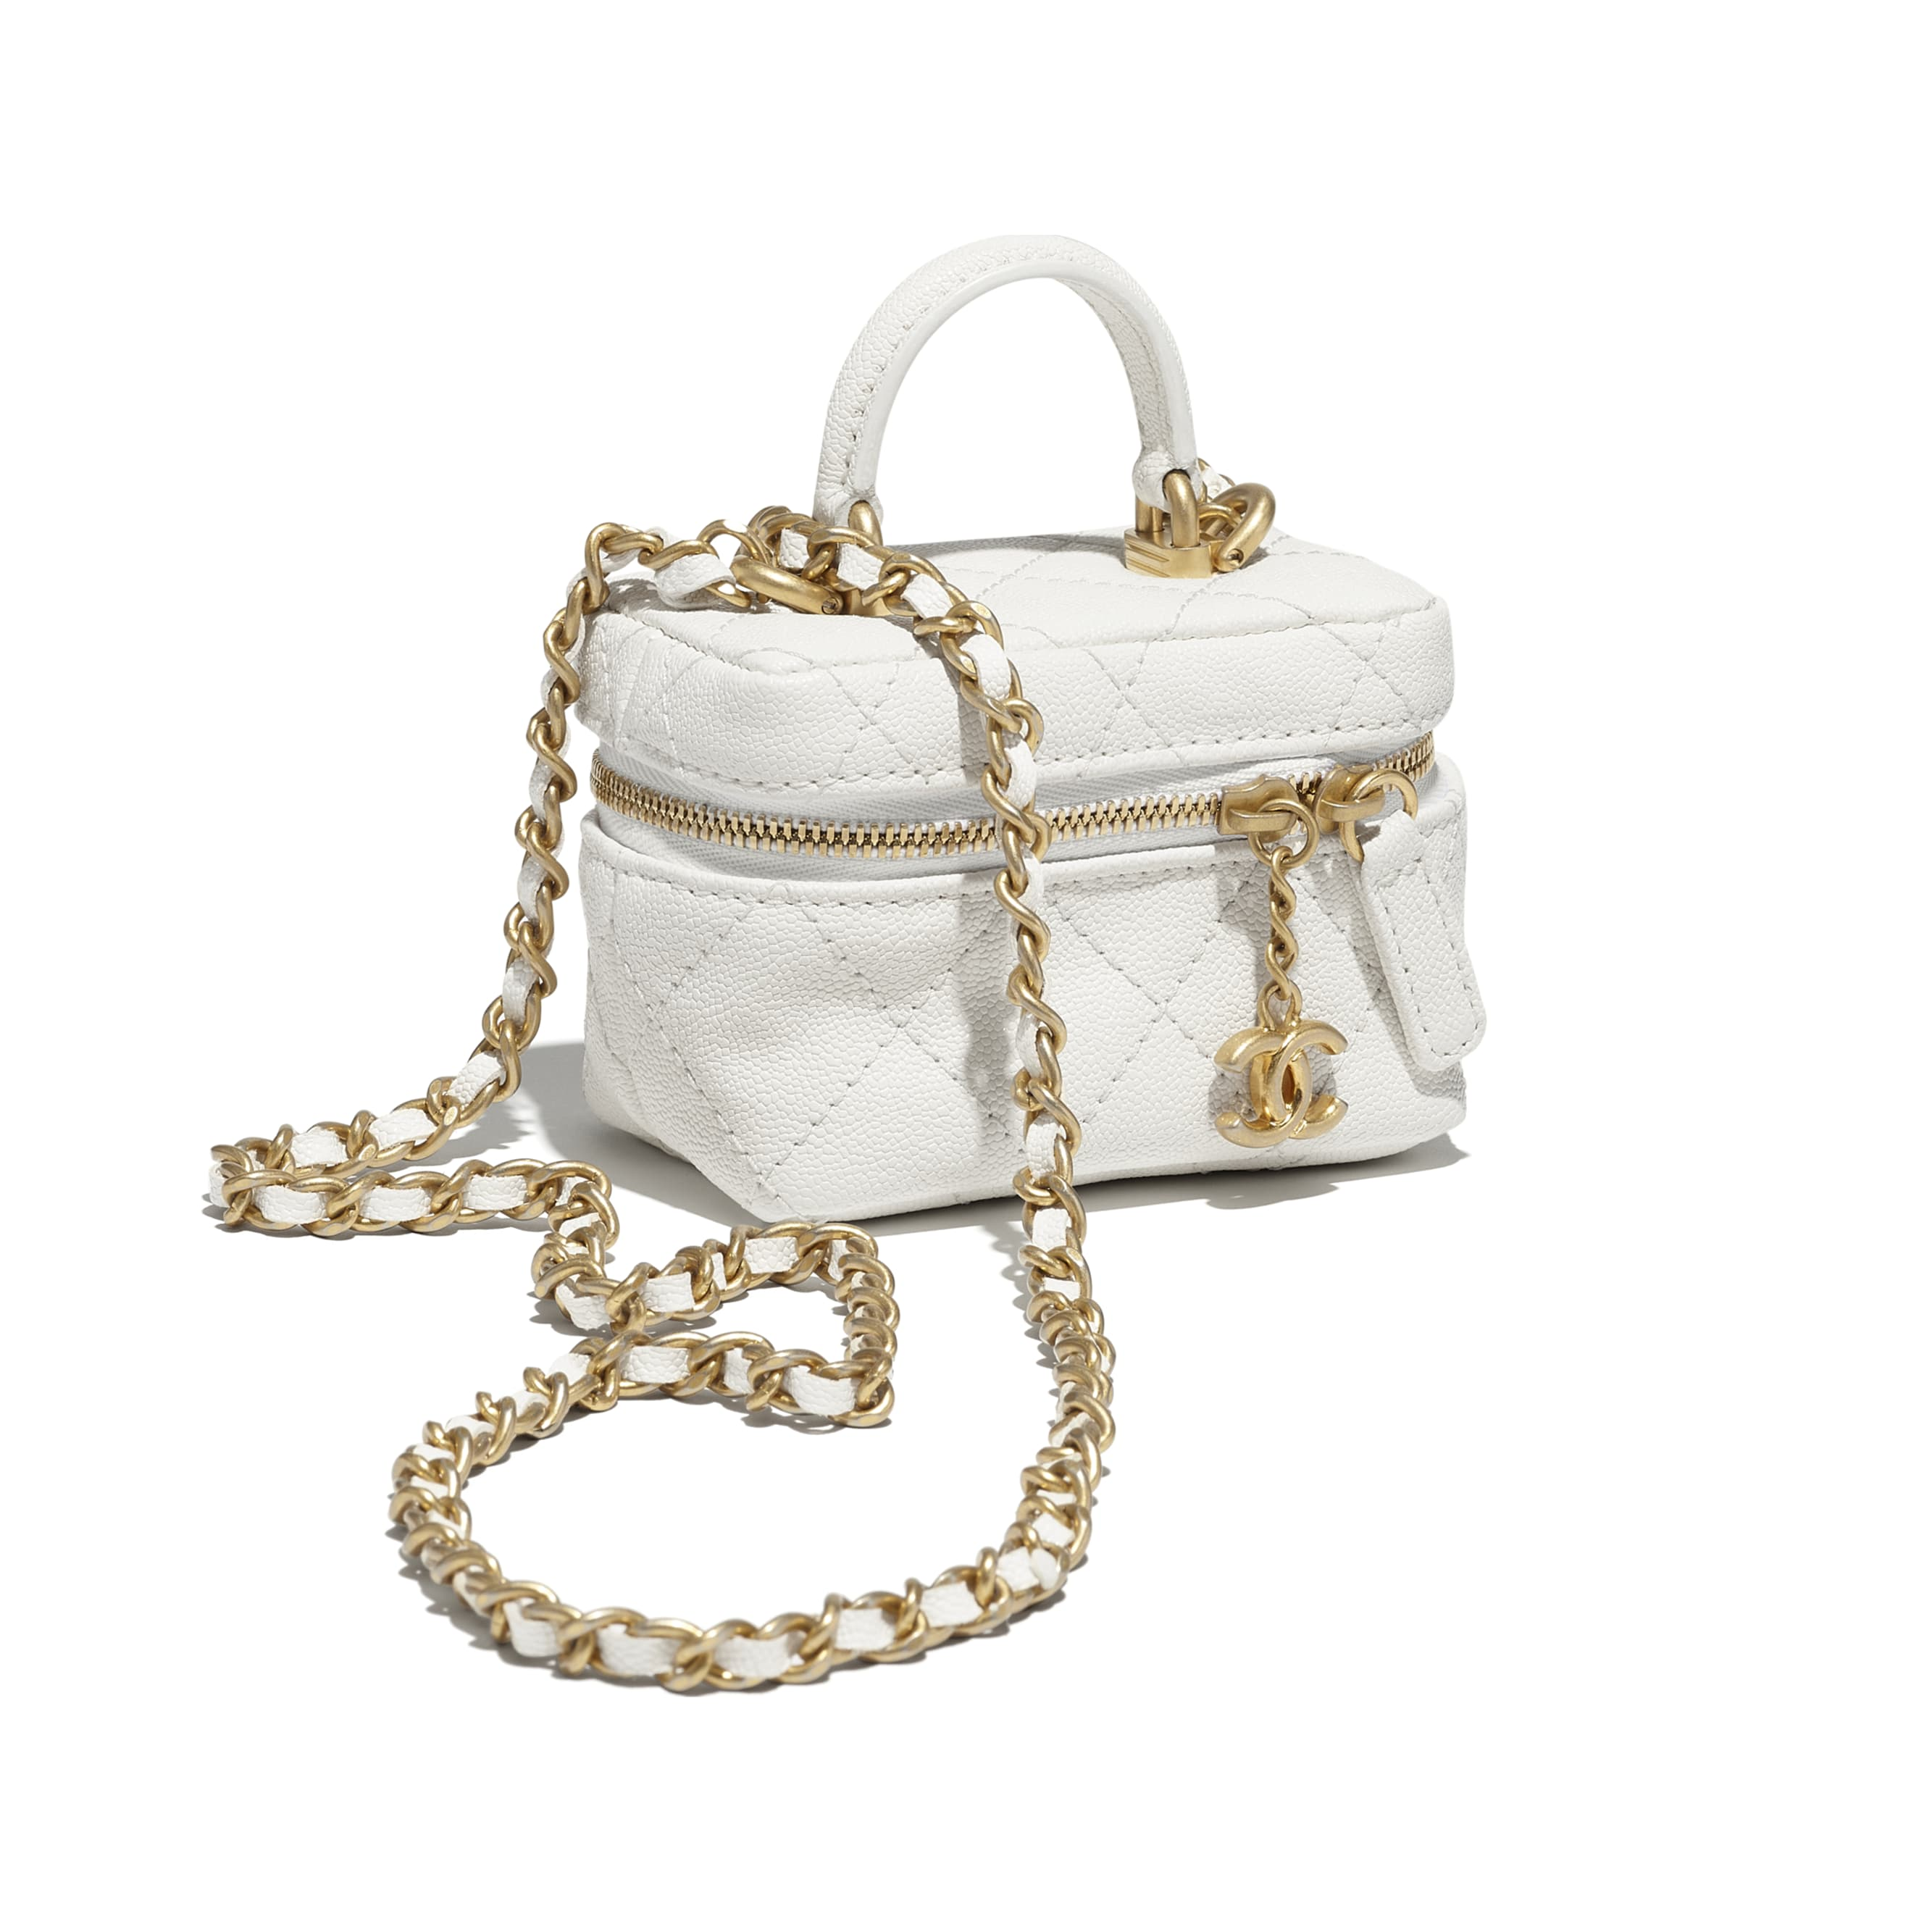 Small Vanity with Chain - White - Grained Calfskin & Gold-Tone Metal - CHANEL - Extra view - see standard sized version